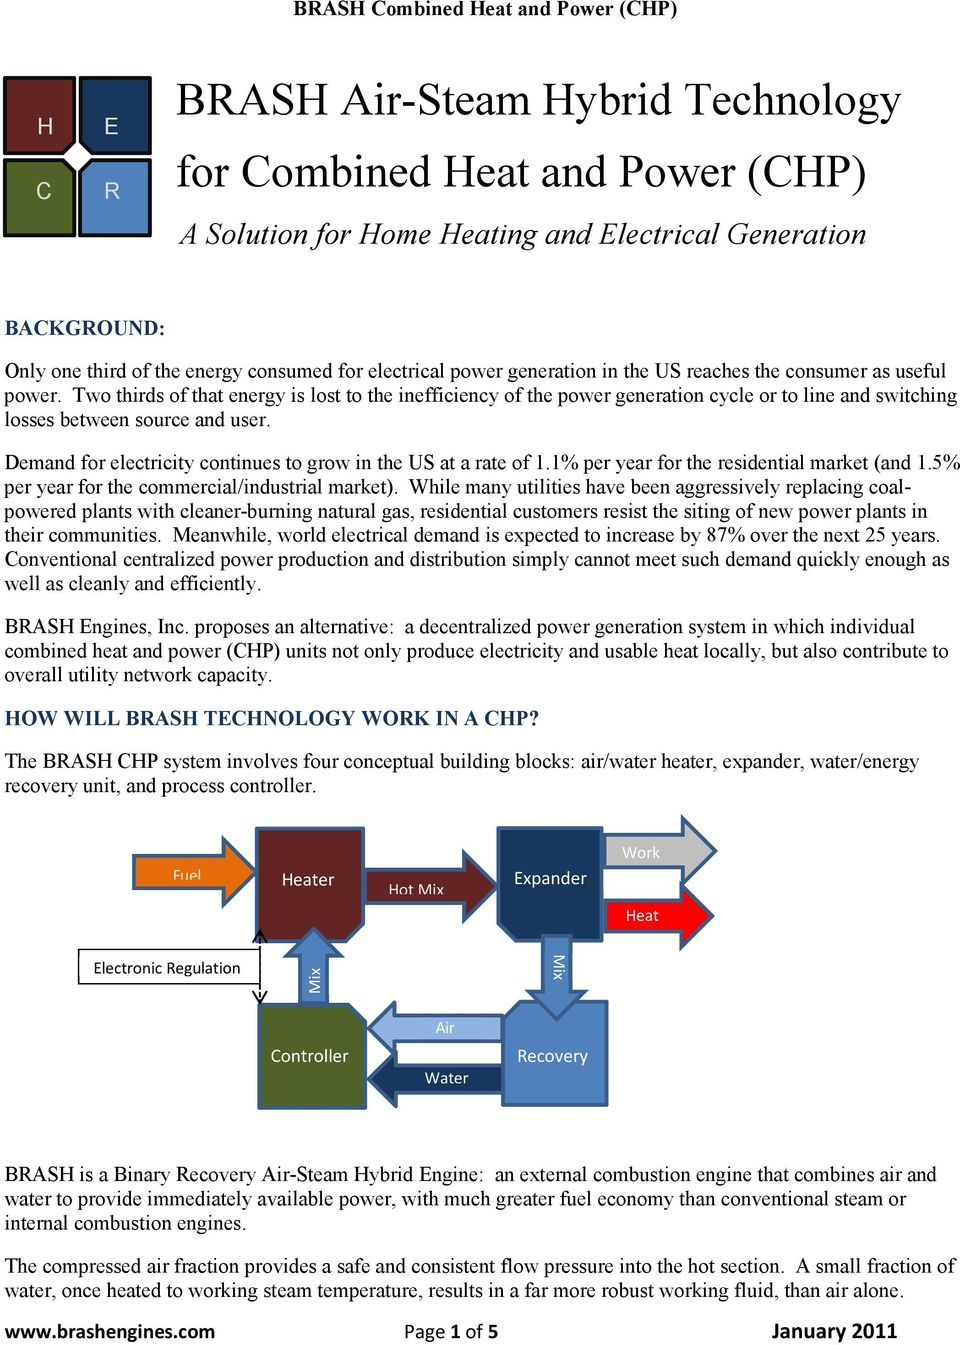 Brash Air Steam Hybrid Technology For Combined Heat And Power Chp Cogeneration Engine Diagram Two Thirds Of That Energy Is Lost To The Inefficiency Generation Cycle Or